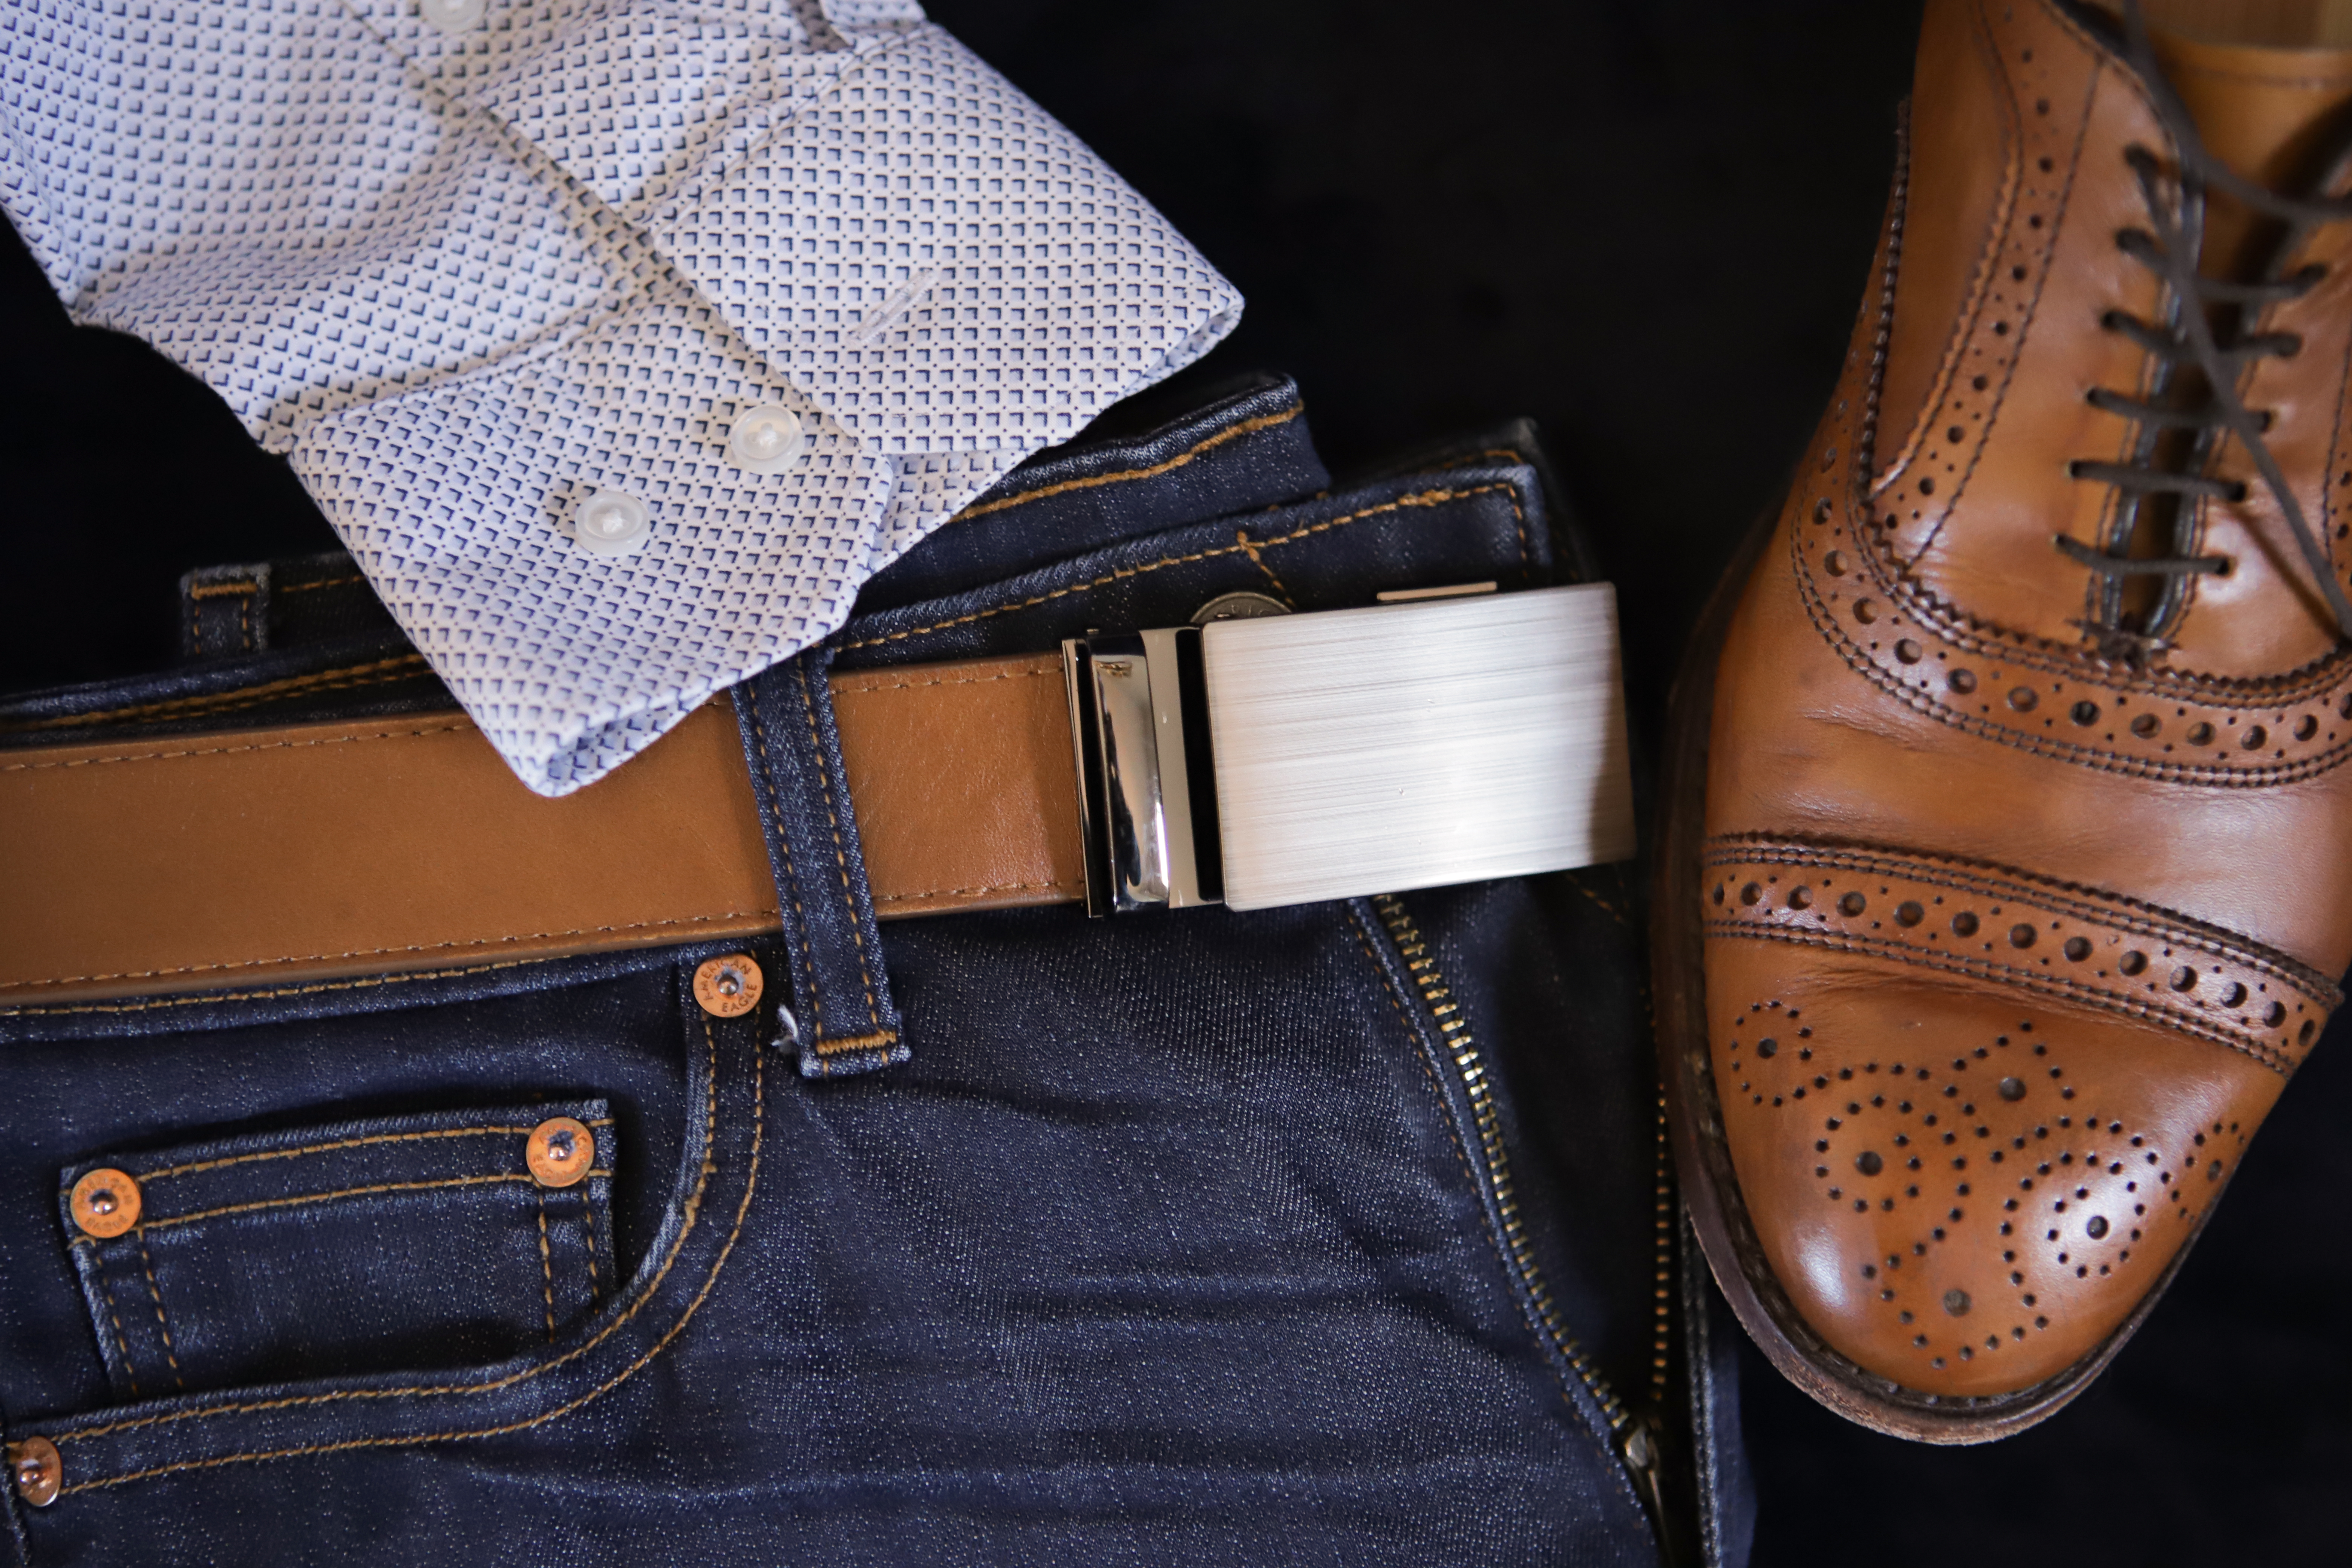 788b89608 Anson Belts - The Best Belts Ever - 40 Over Fashion